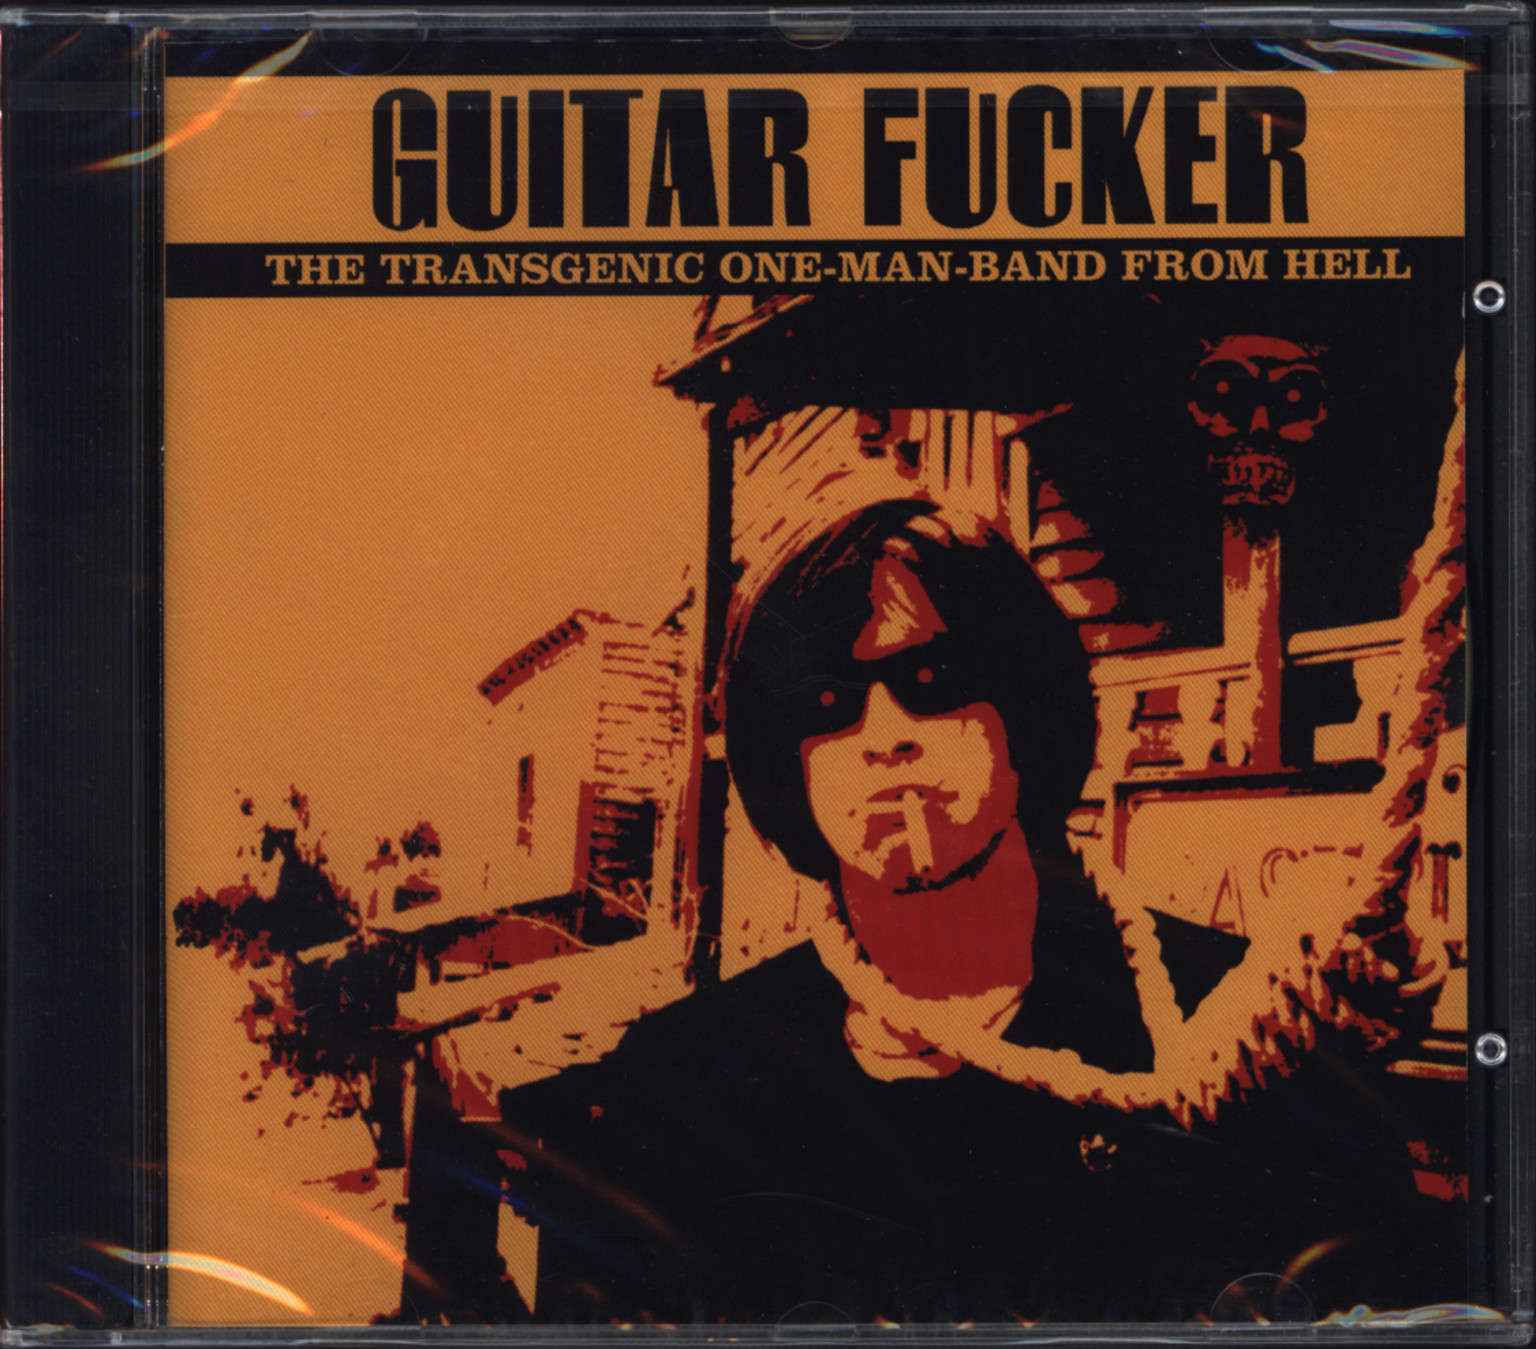 Guitar Fucker: The Transgenic One-Man-Band From Hell, CD